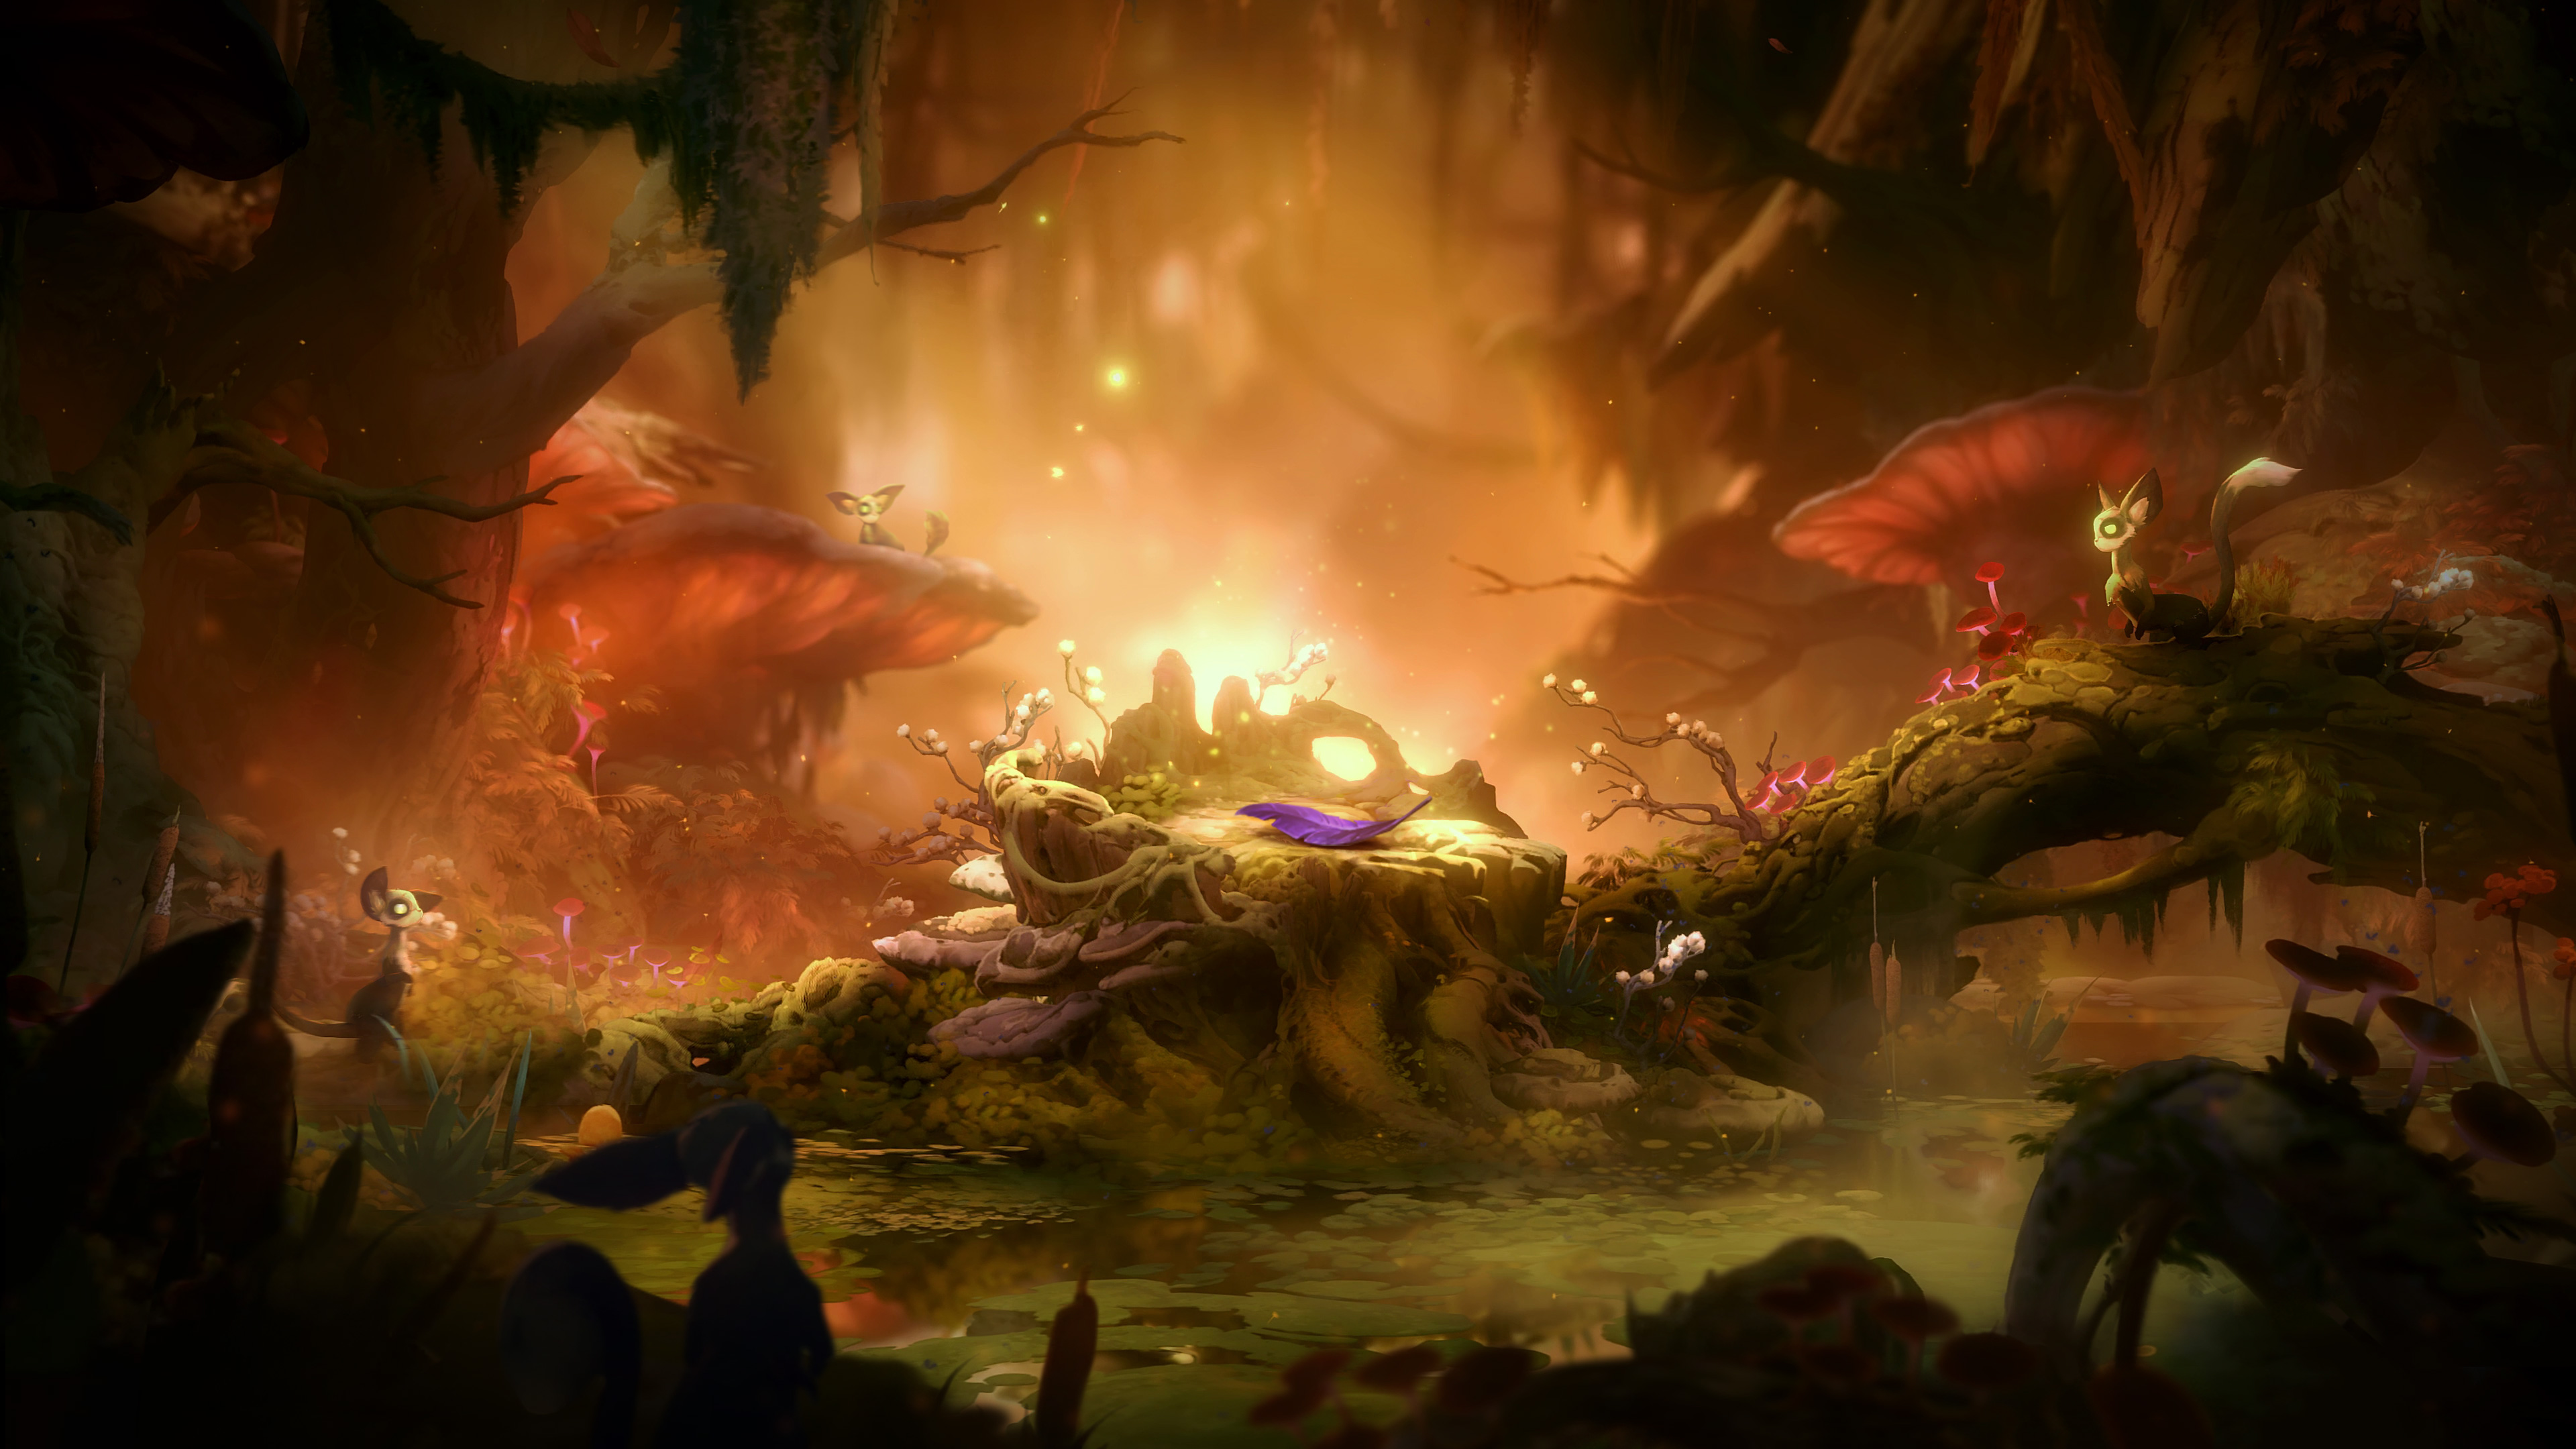 2560x1440 Ori And The Will Of The Wisps 5k 1440p Resolution Hd 4k